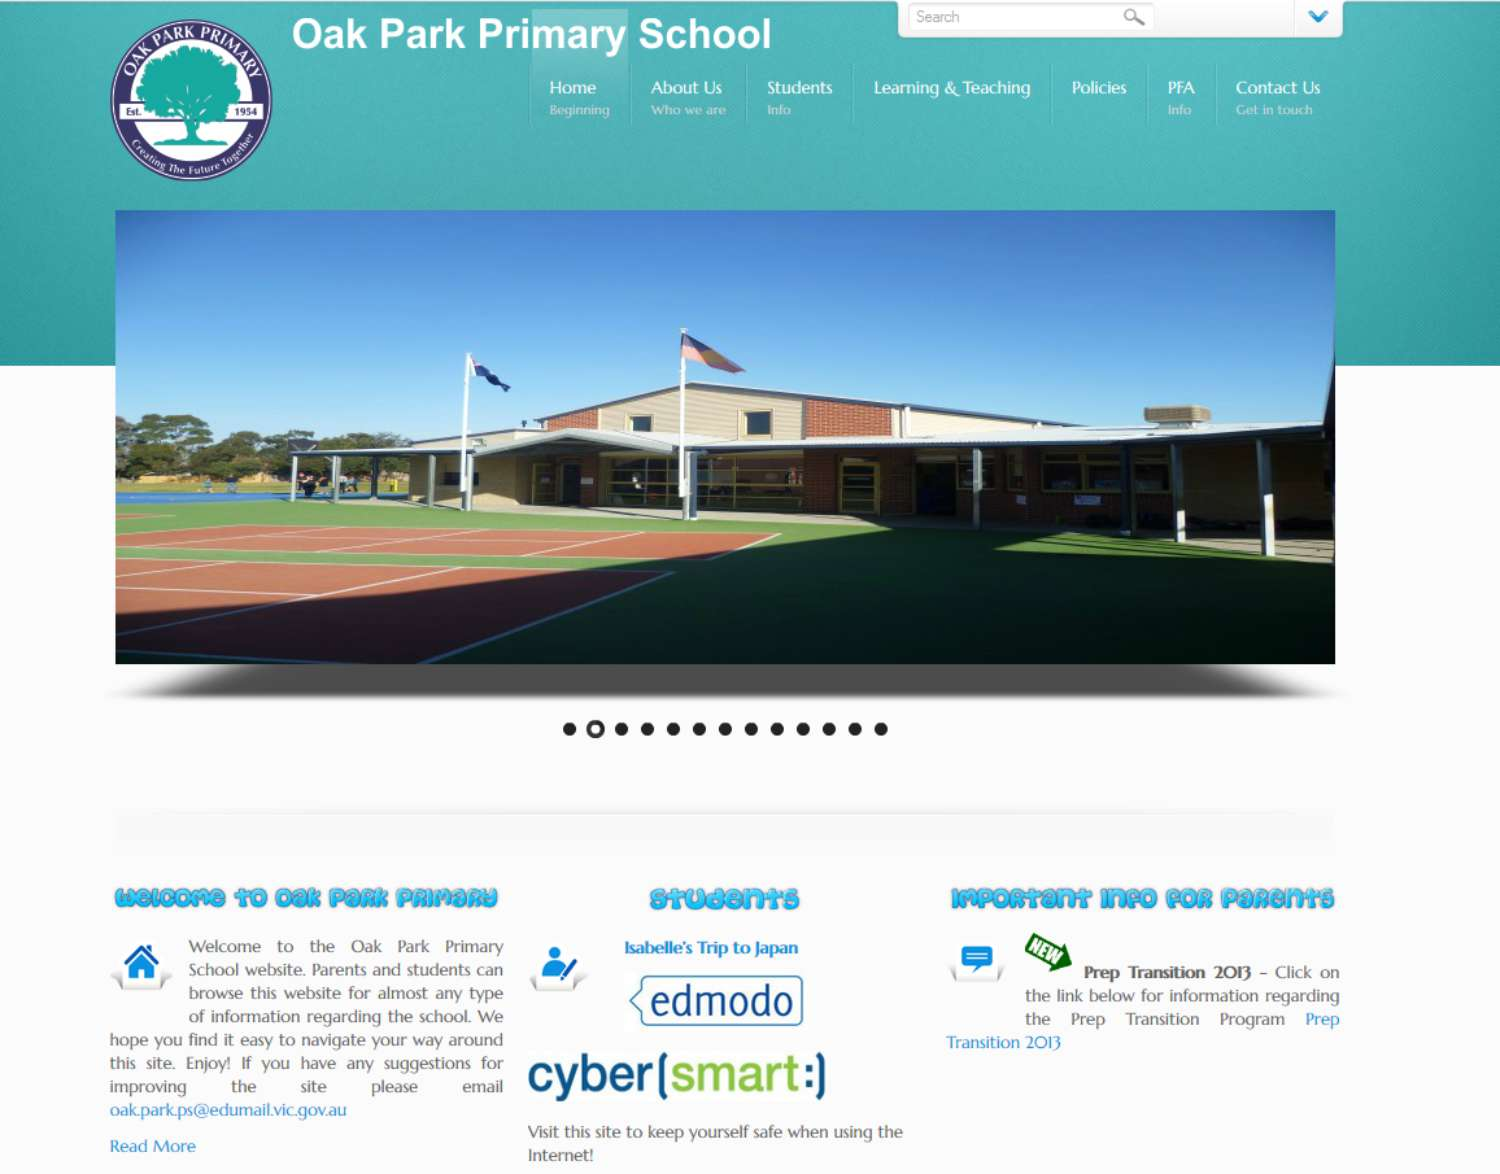 Oak Park Primary School